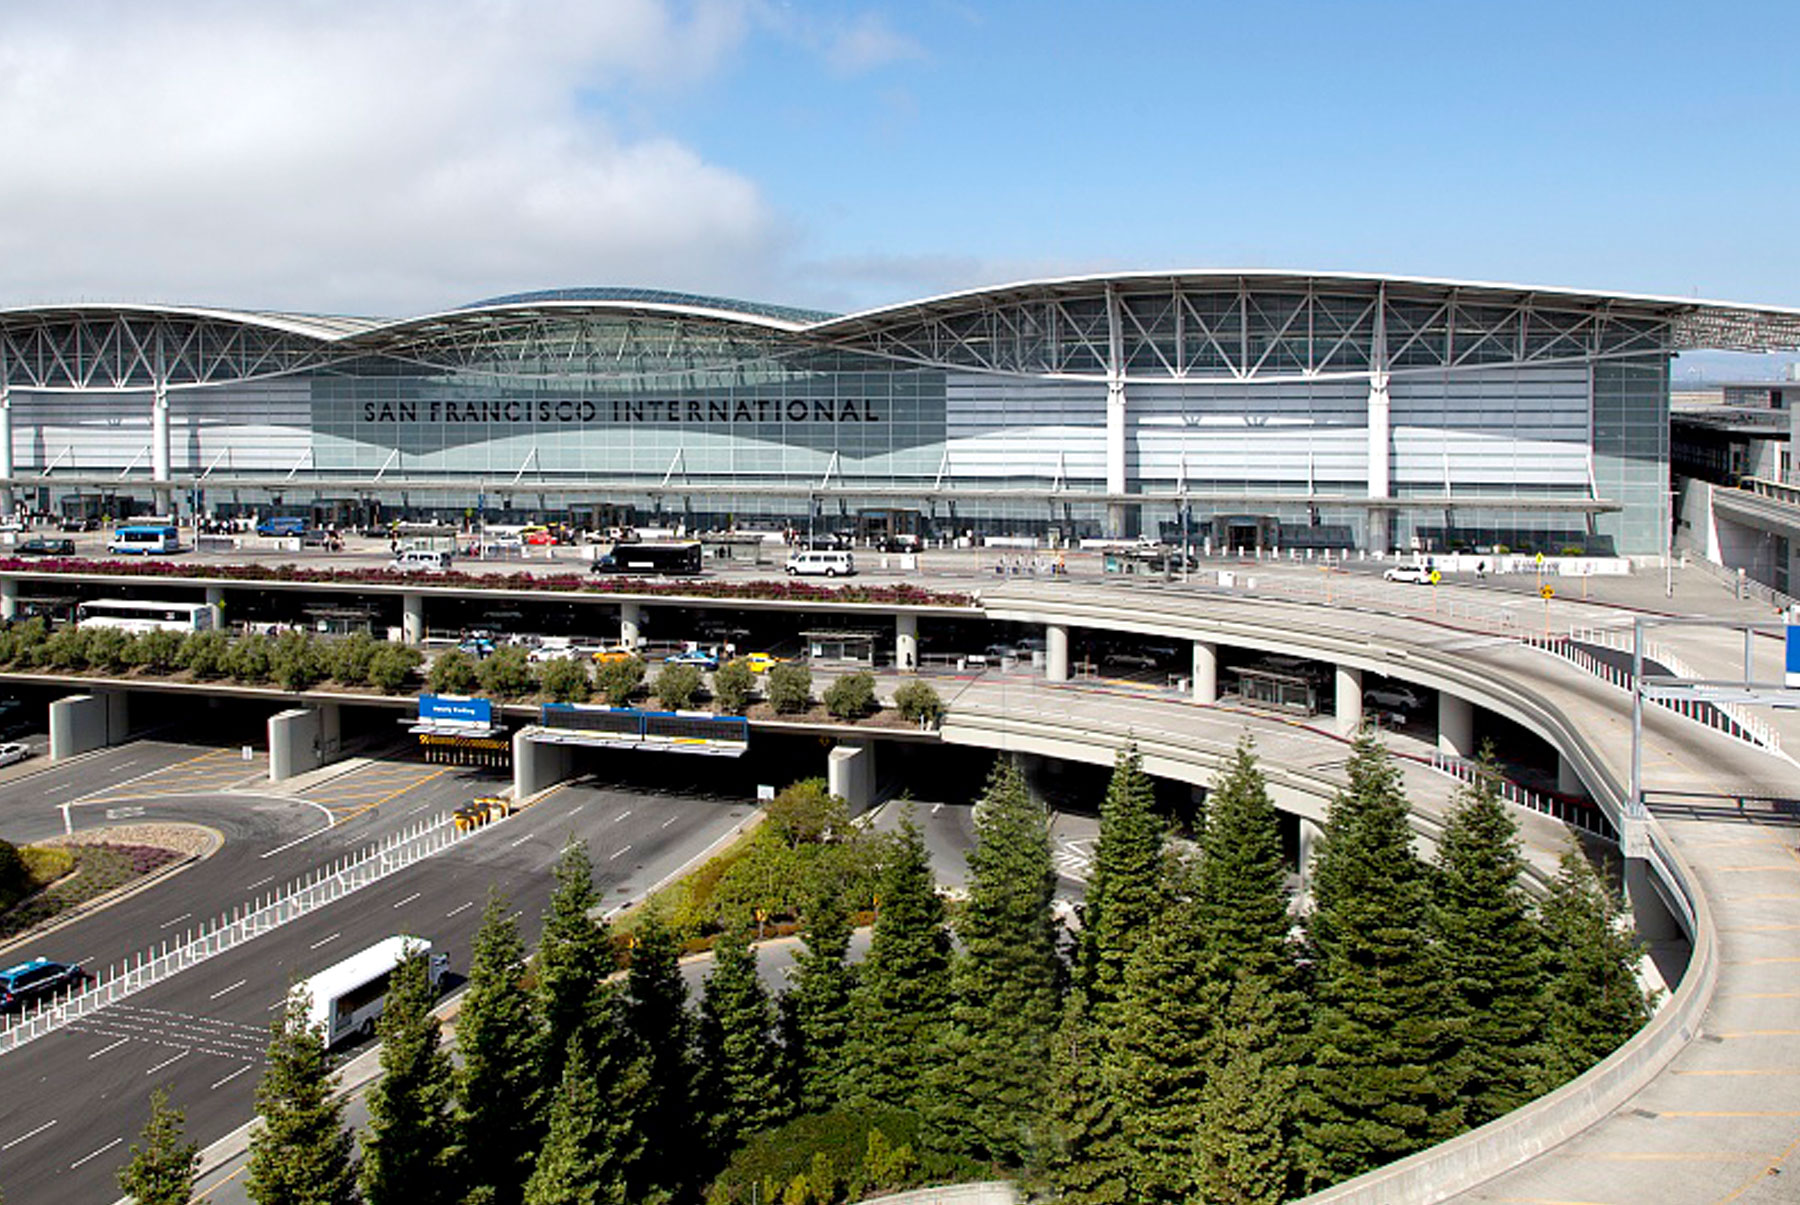 SF International Airport